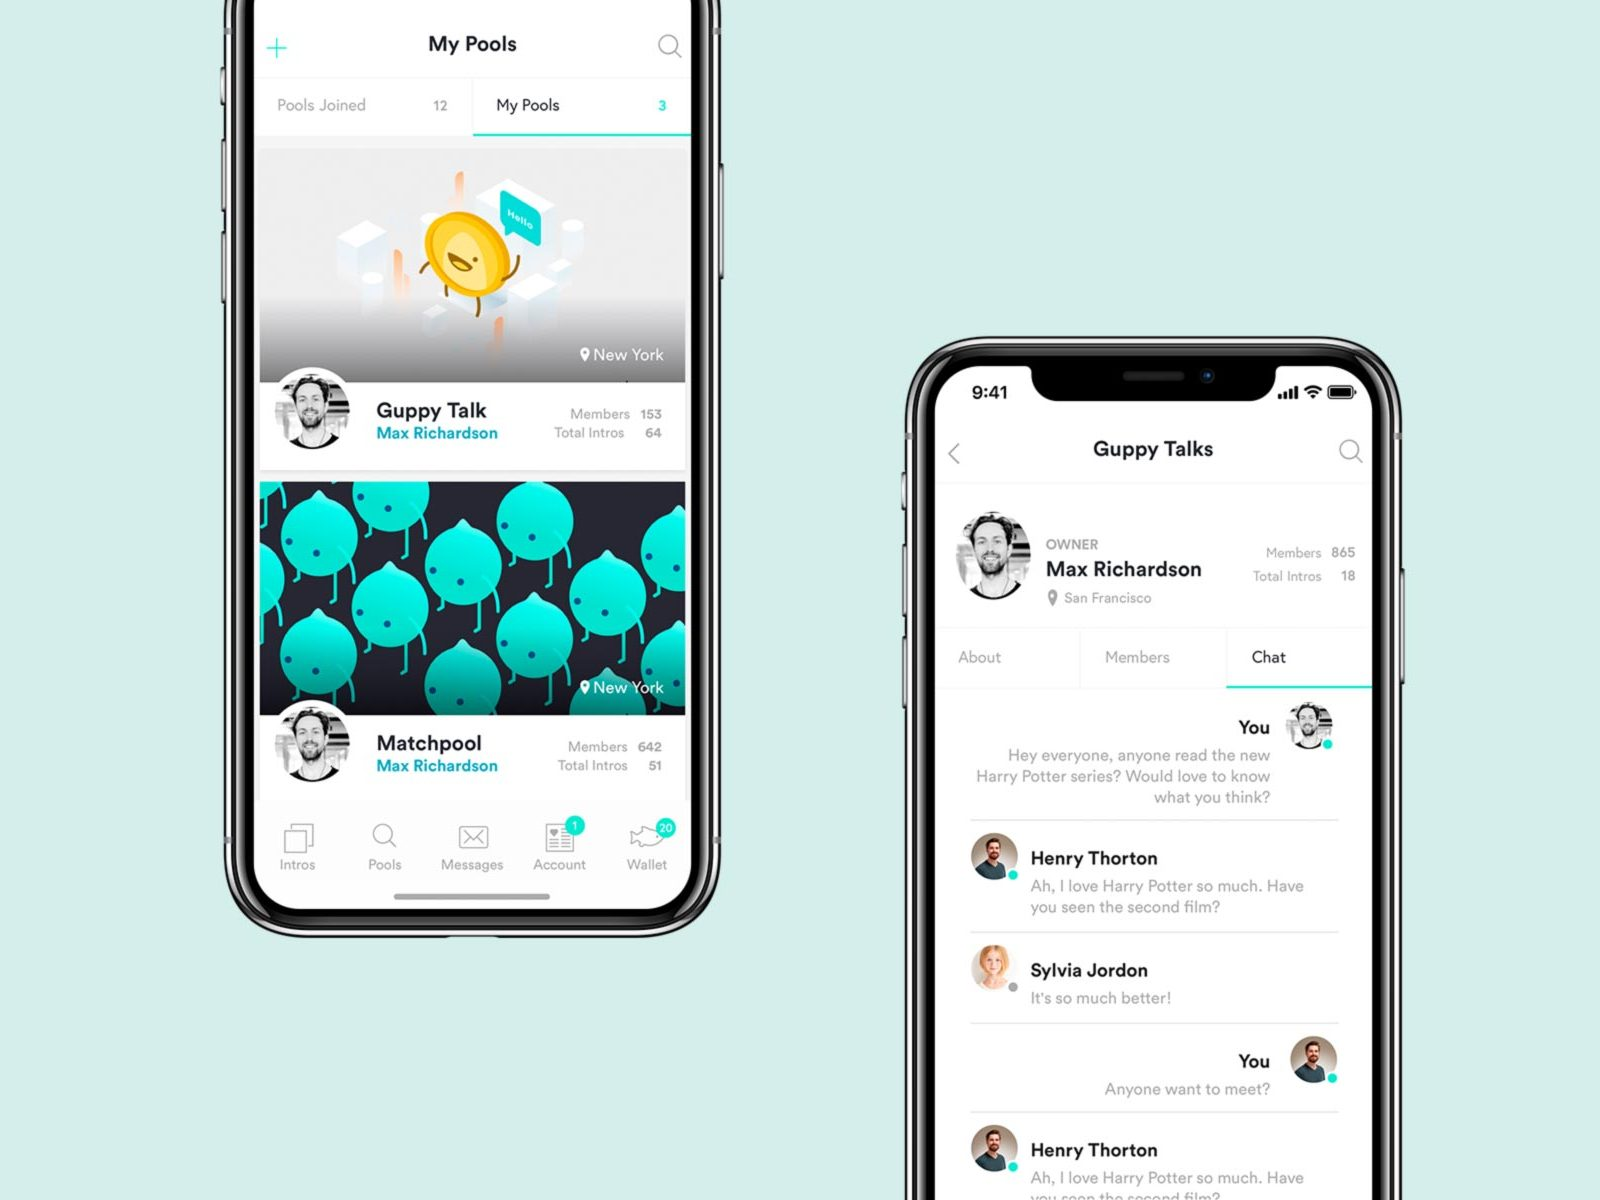 Matchpool iOS application